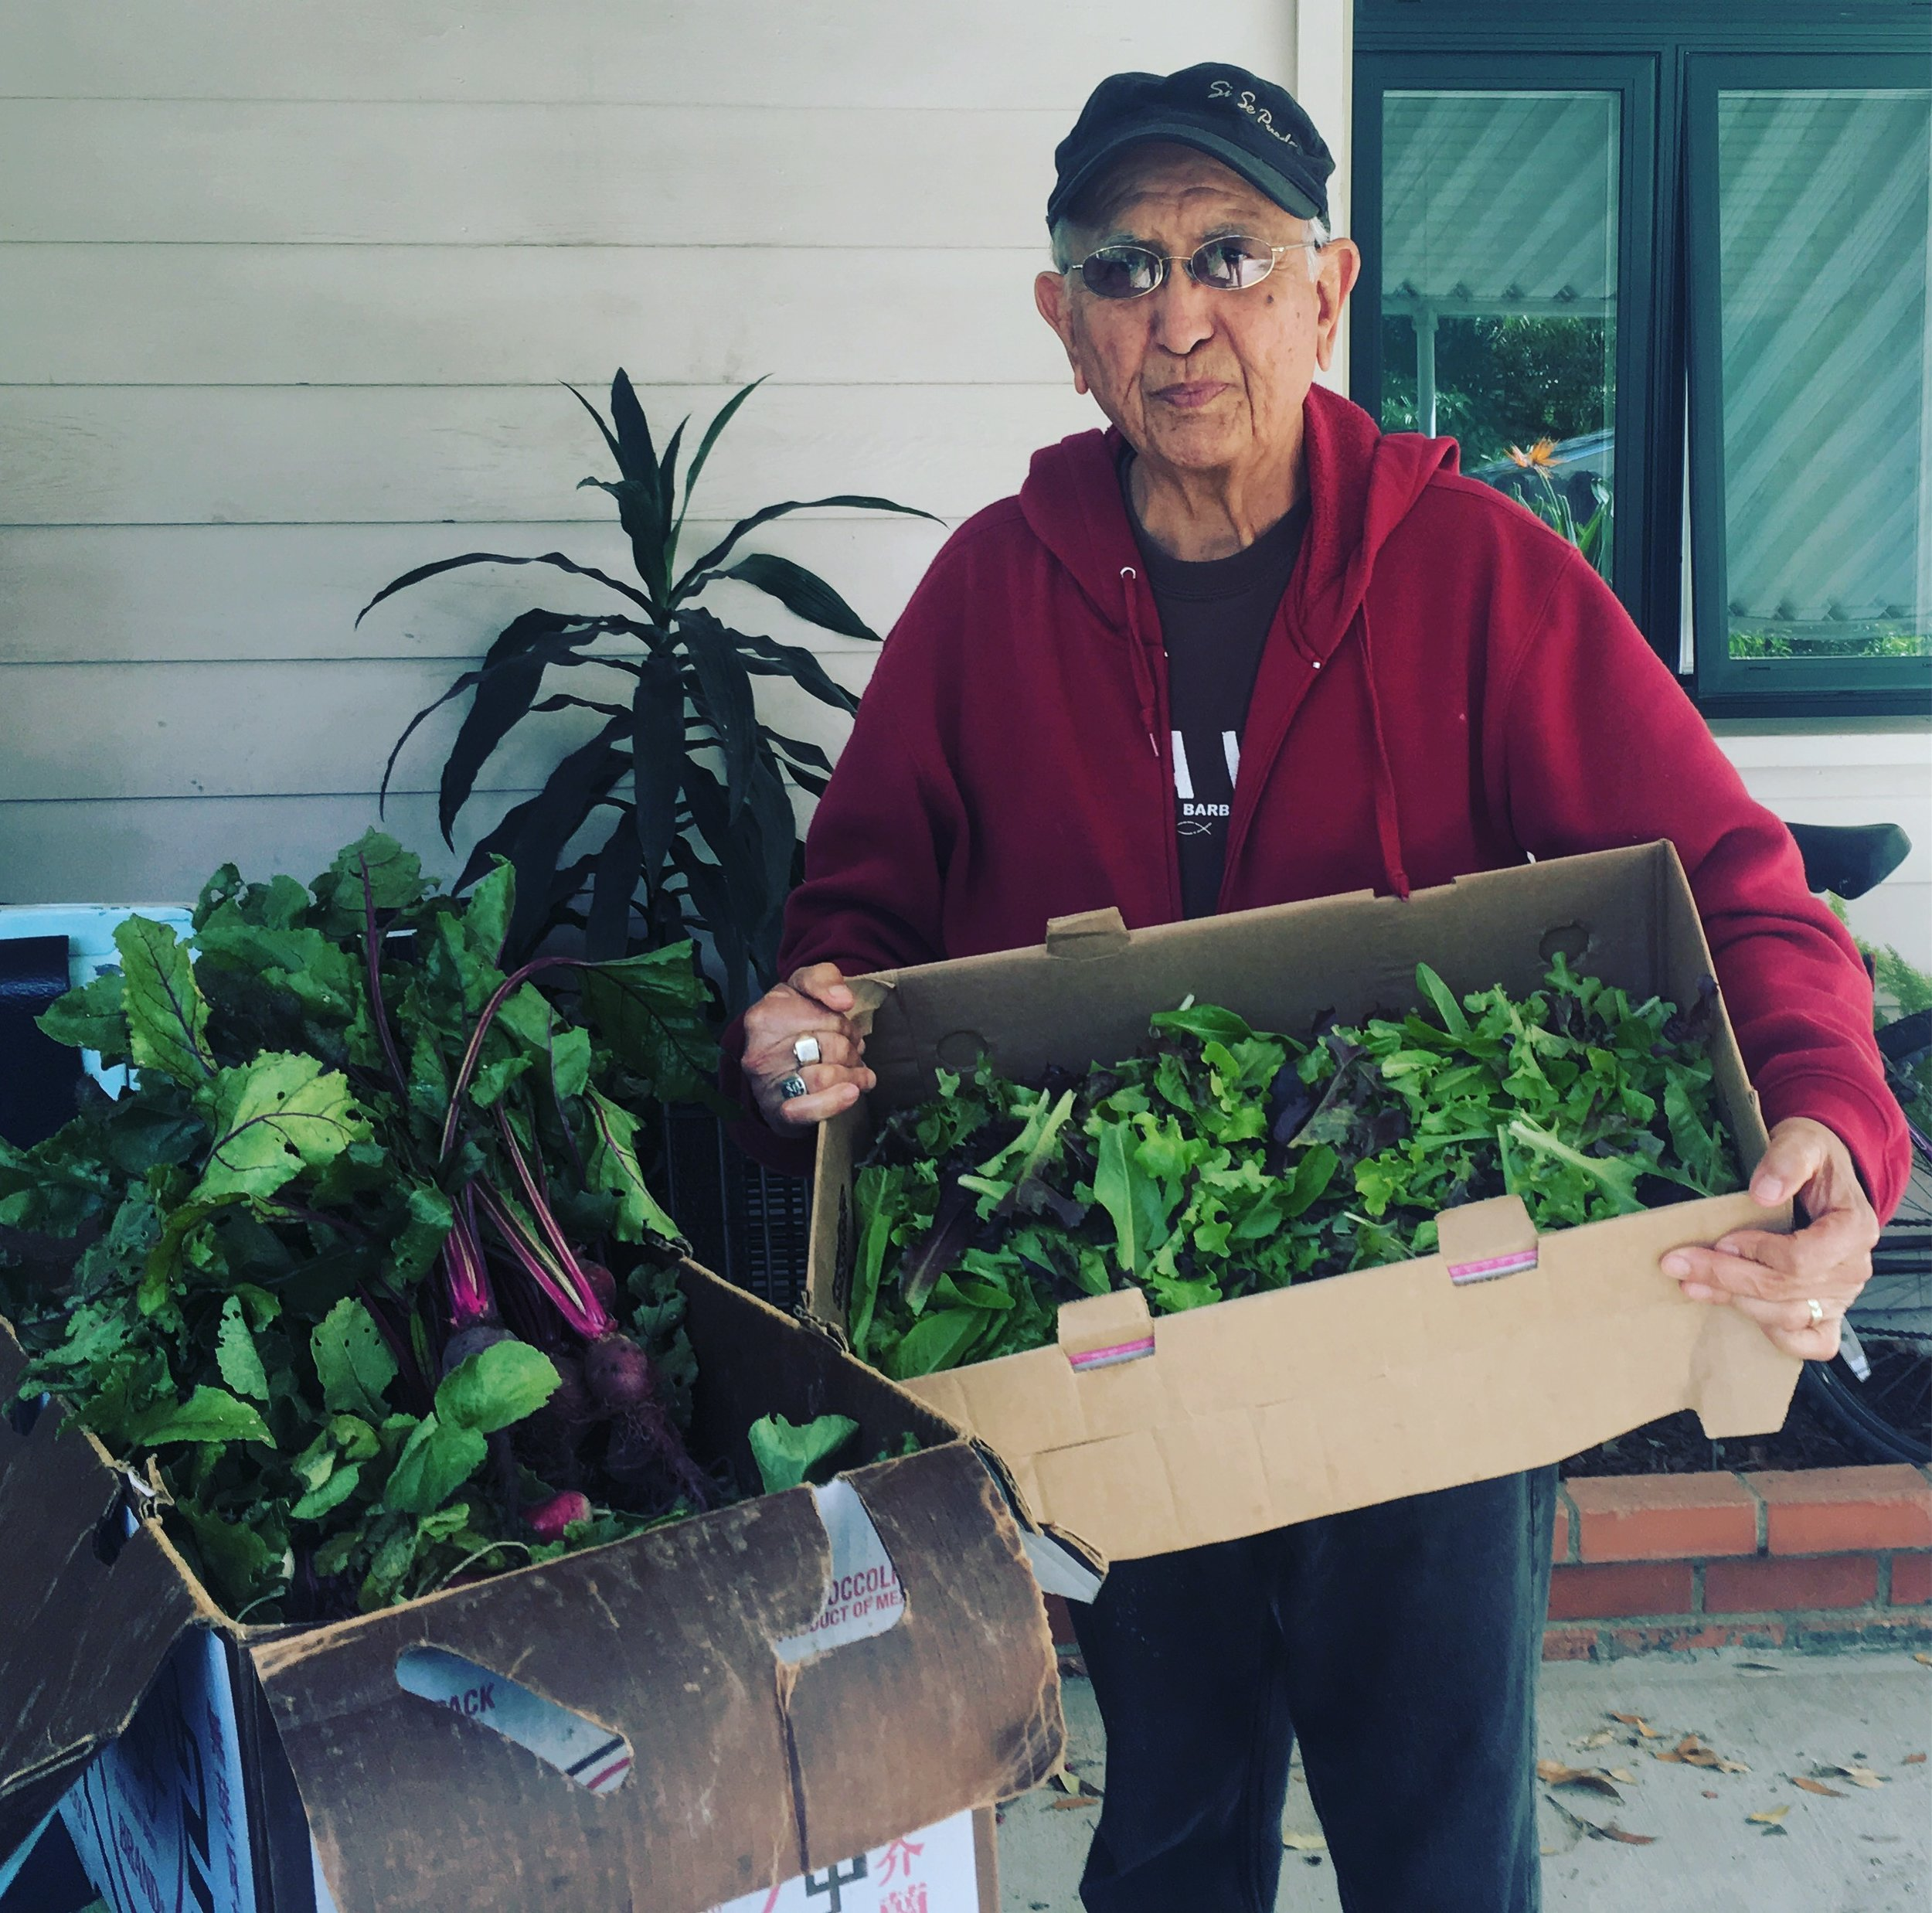 Gilberto delivers food every other Wednesday so we share from our harvest so he can deliver fresh veggies too.